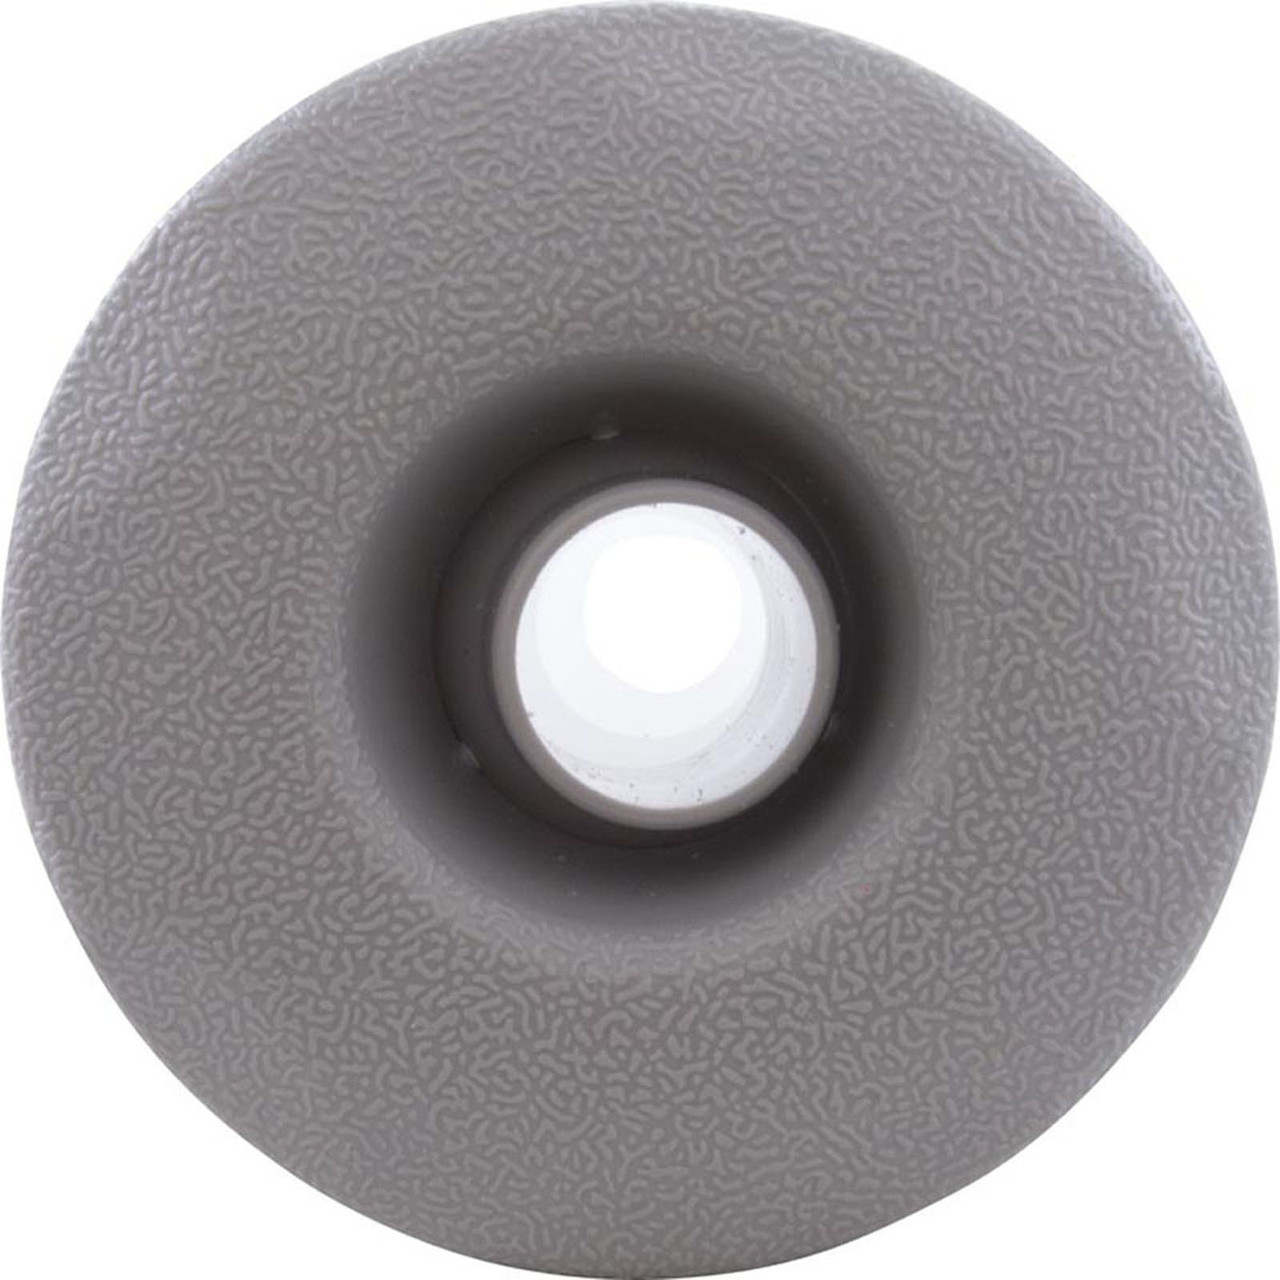 "CMP, Customer molded products, 23422-119-000, Jet Internal, 2"", Typhoon 200, Directional, Gray, Hot tub, spa"